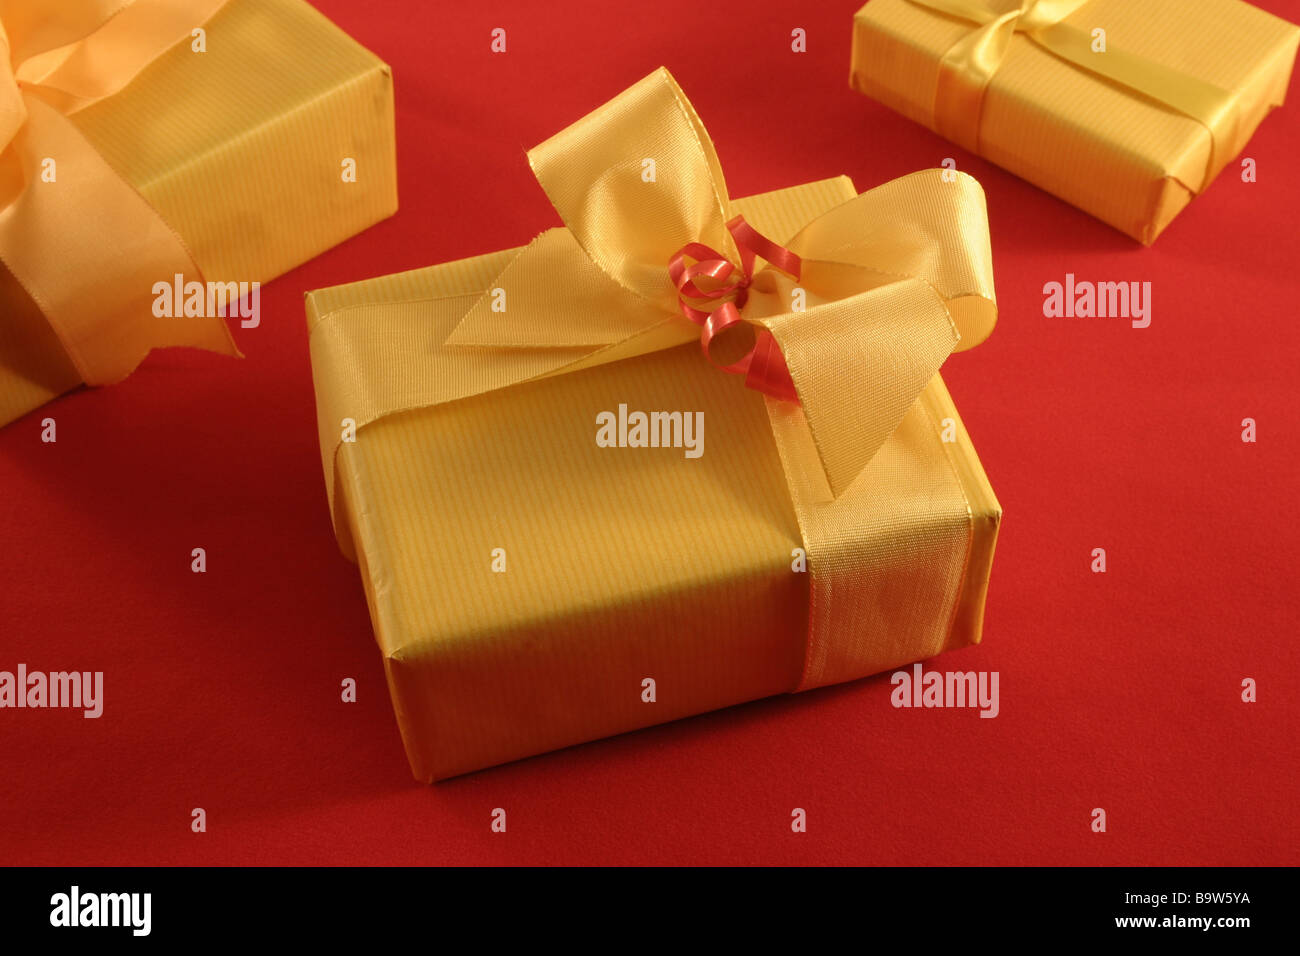 Bright Christmas Decoration Of Wrapped Parcels Against A Light Wooden Wall Birthday Gifts